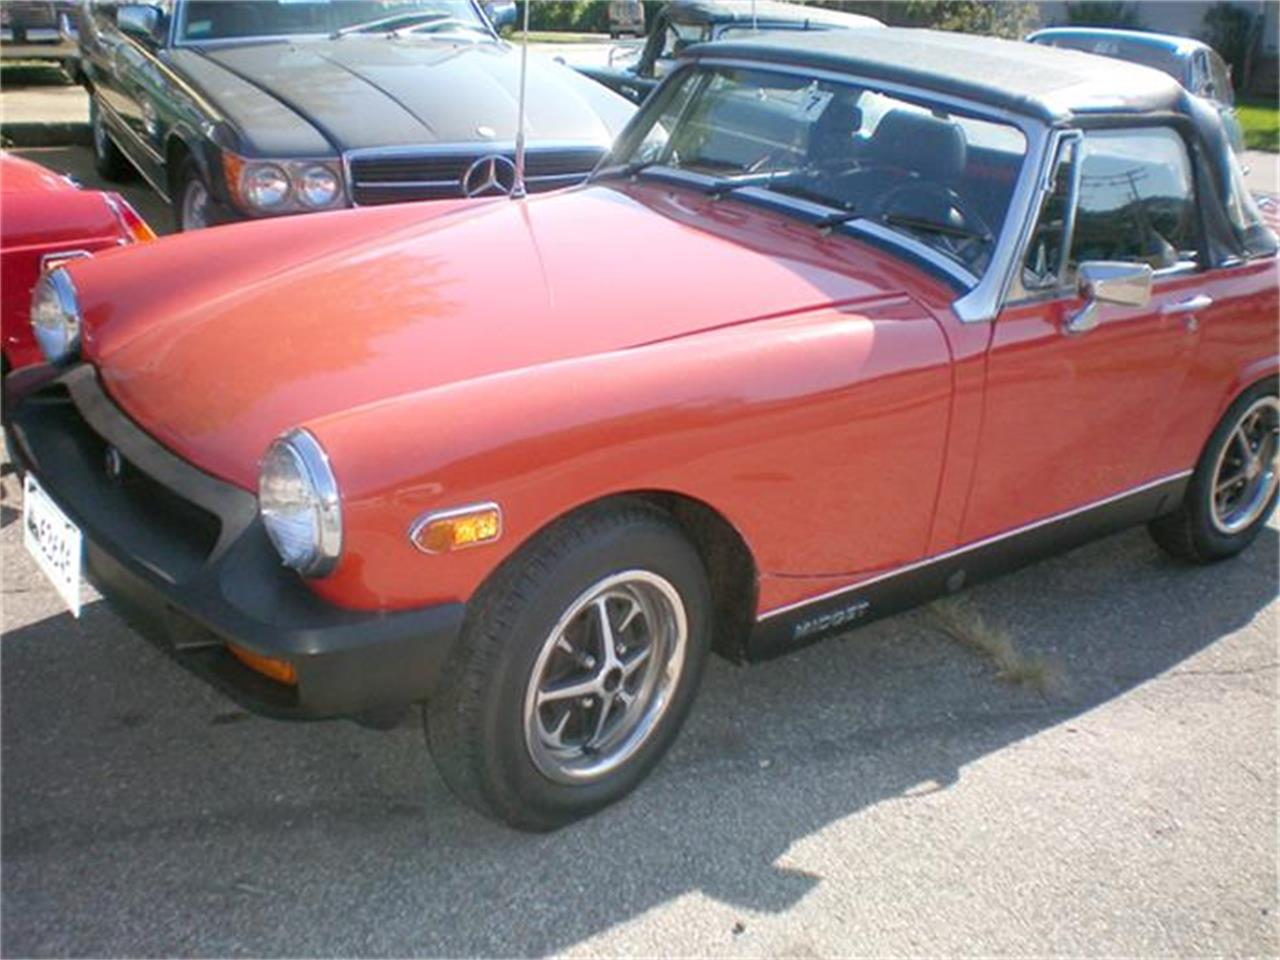 Large Picture of '78 Midget located in New Hampshire - $11,000.00 Offered by Brit Bits - FG8F